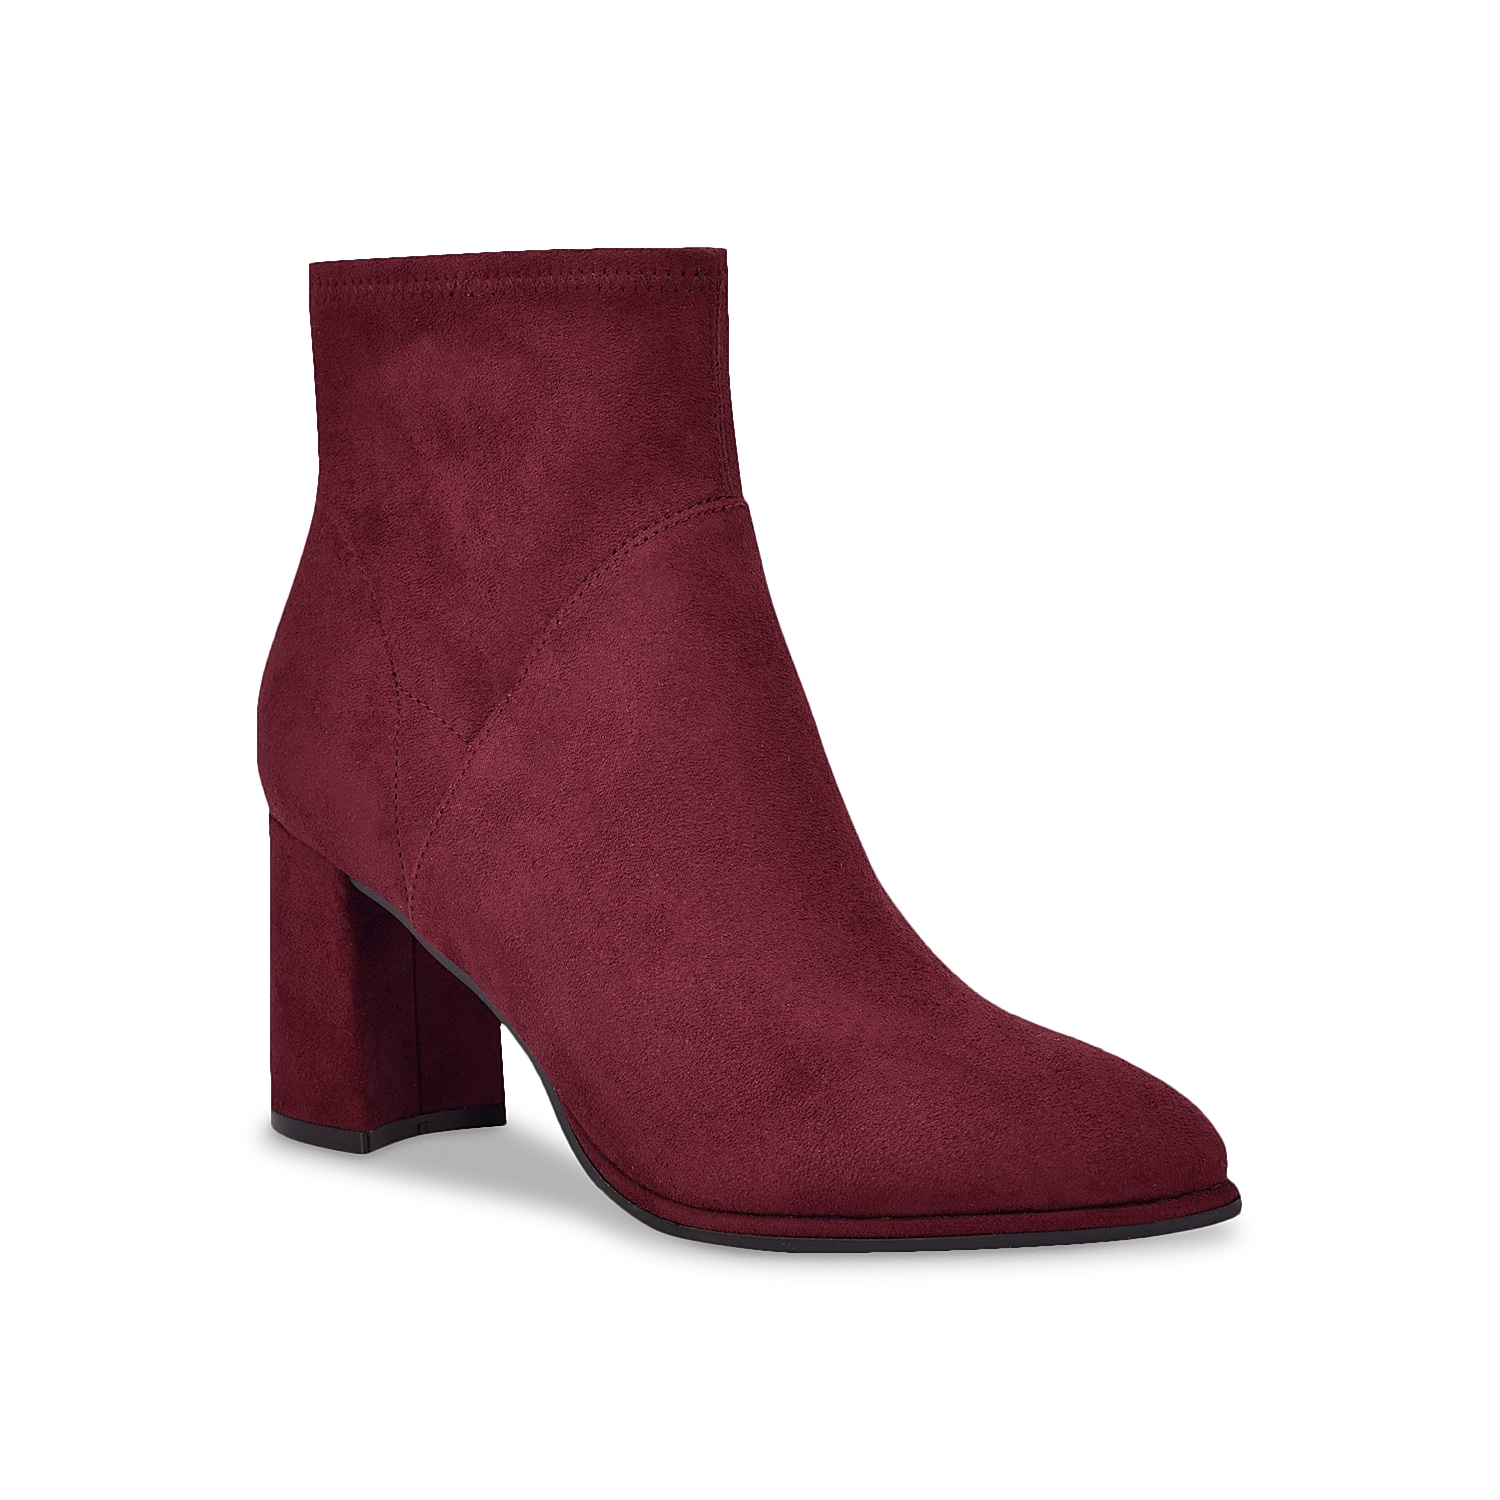 Complement the fall colors with the Dyvine bootie by Marc Fisher. This elegant bootie showcases stretch upper for a comfortable fit along with pointed and covered block heel for added style.